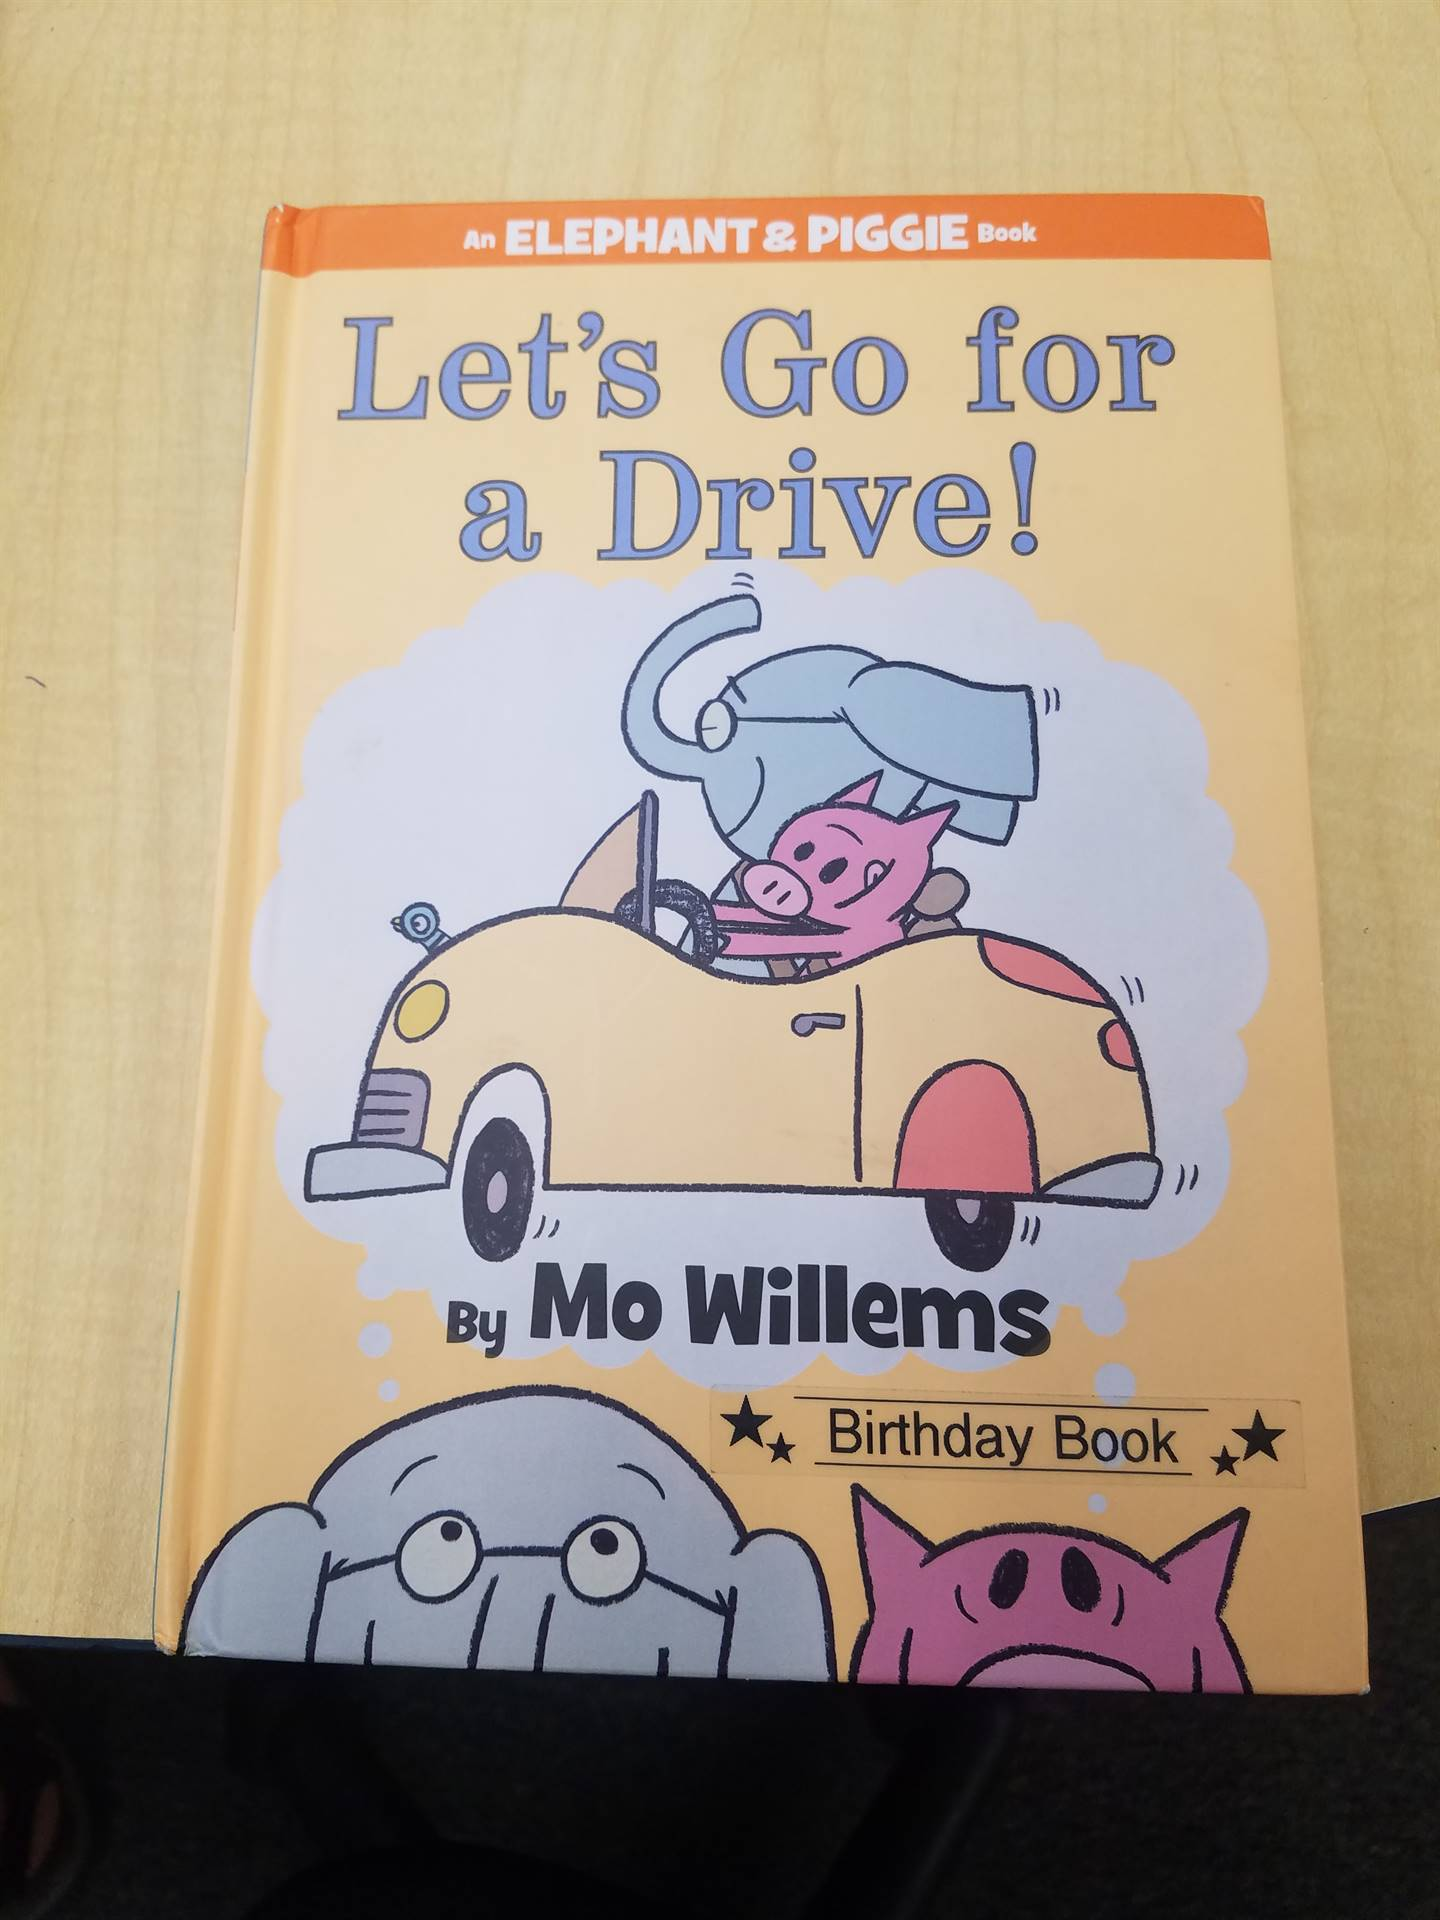 Mo Willems book